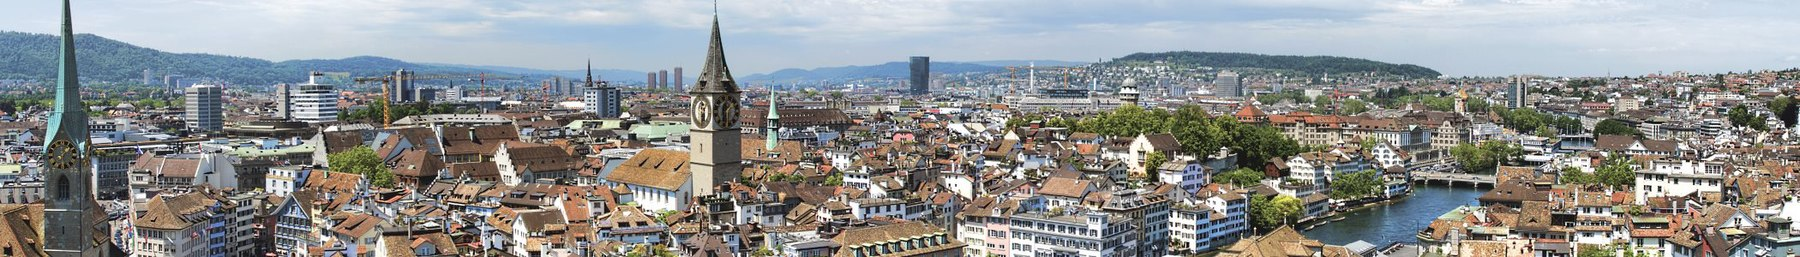 View across Zurich from Grossmünster